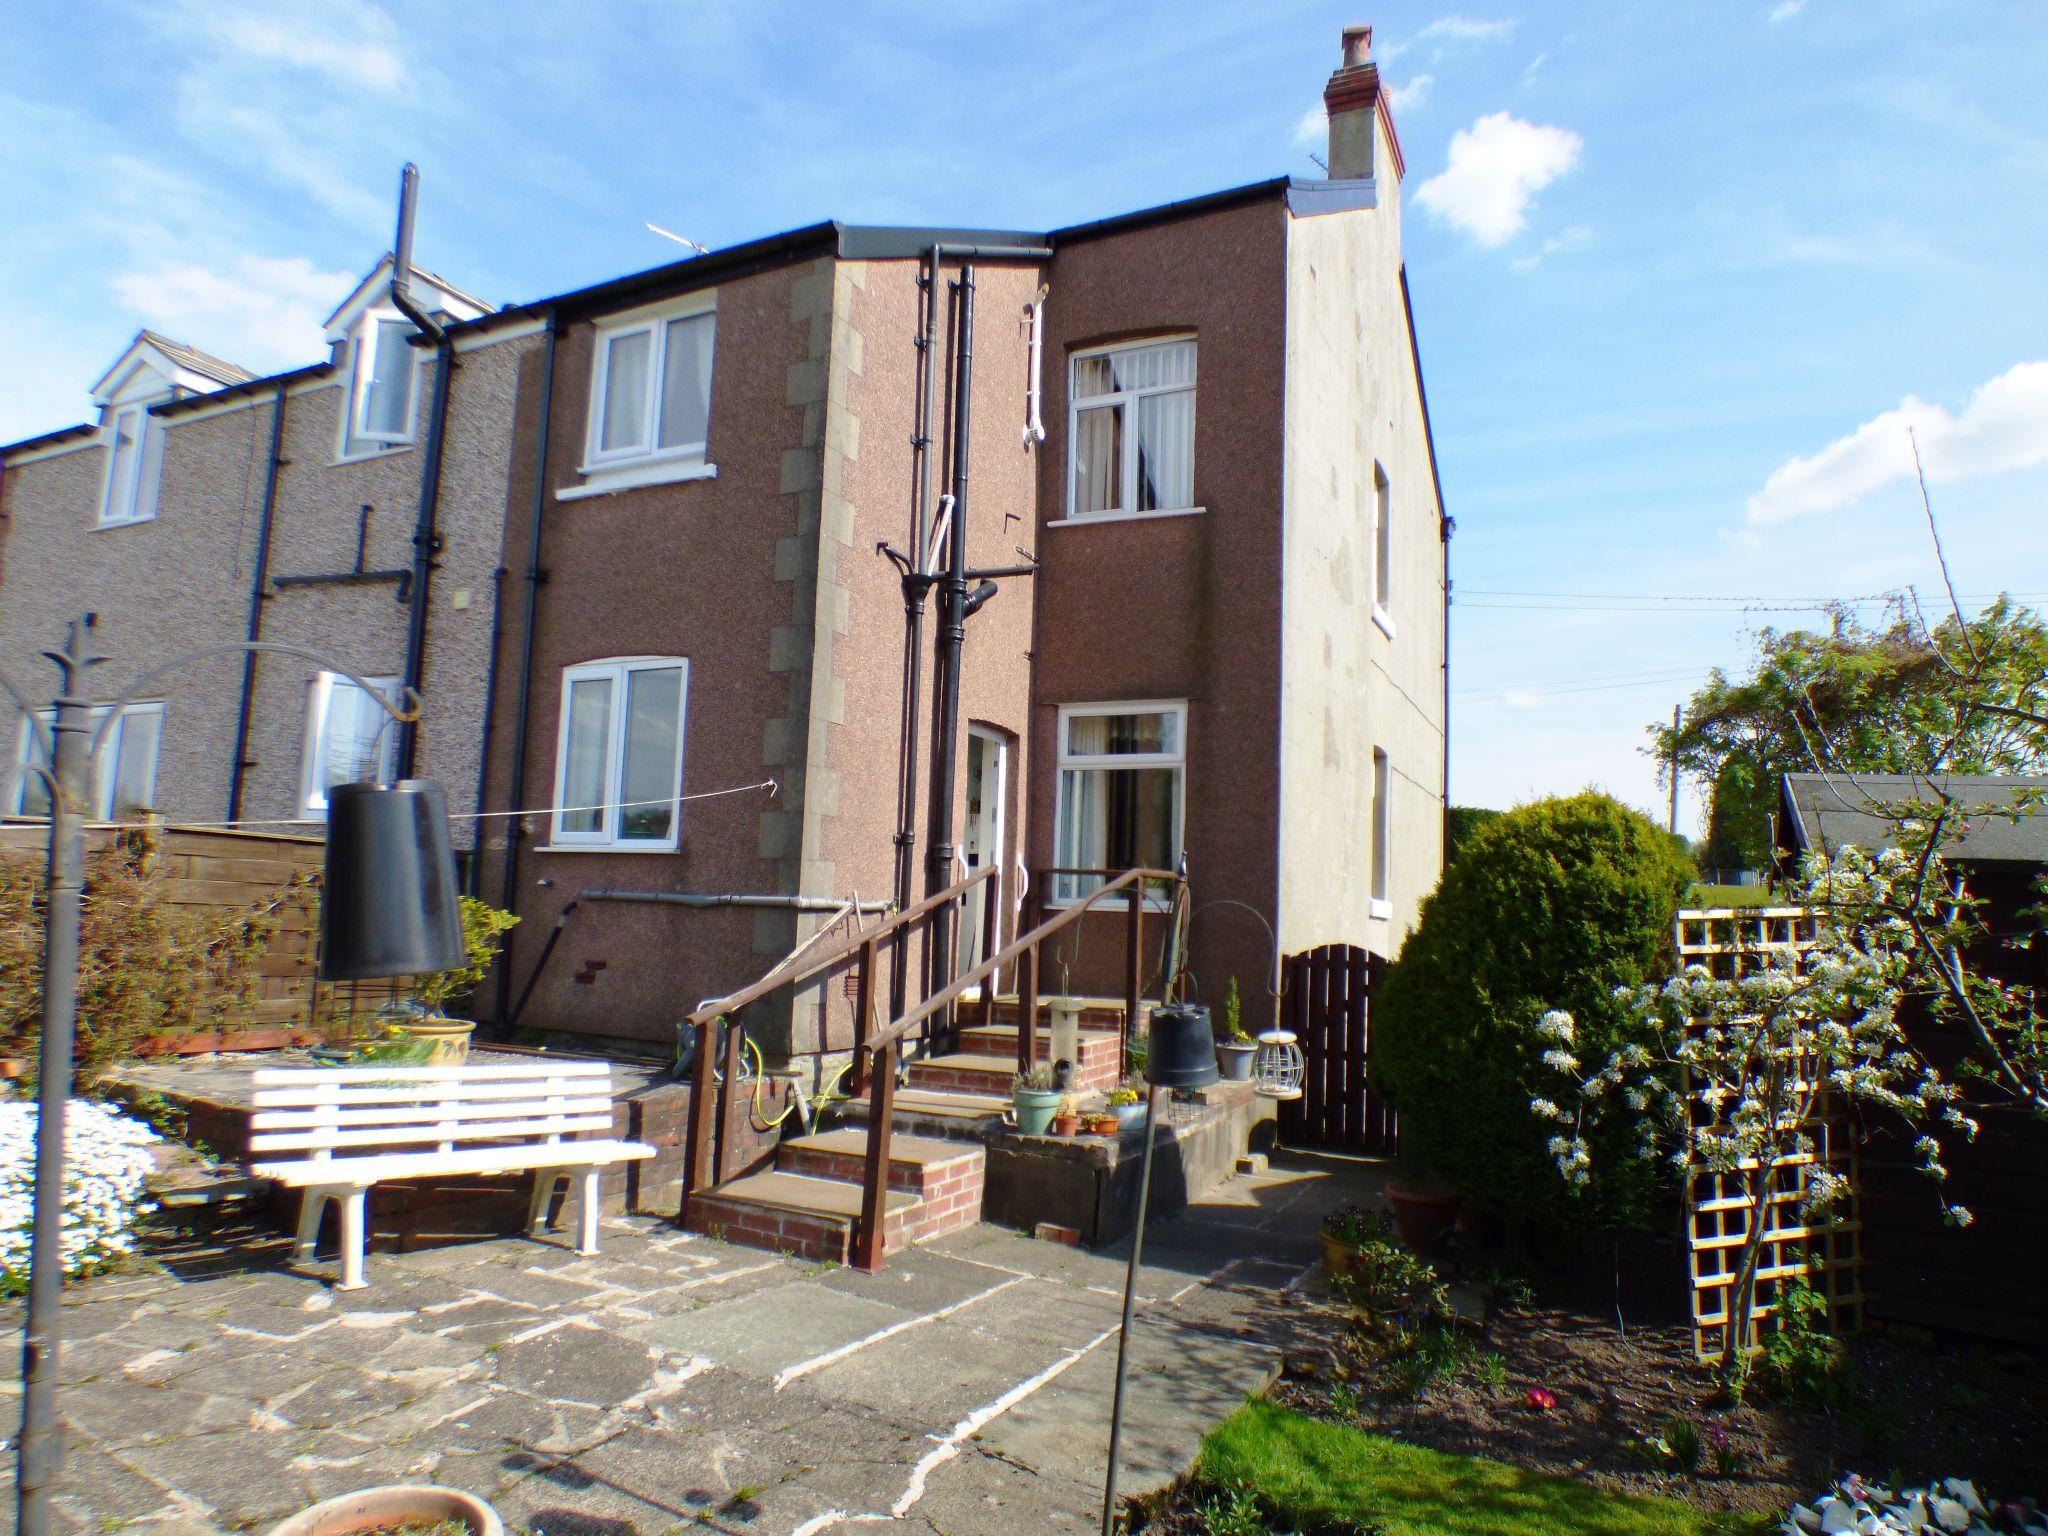 2 Bedroom Semi-detached House For Sale - Rear External